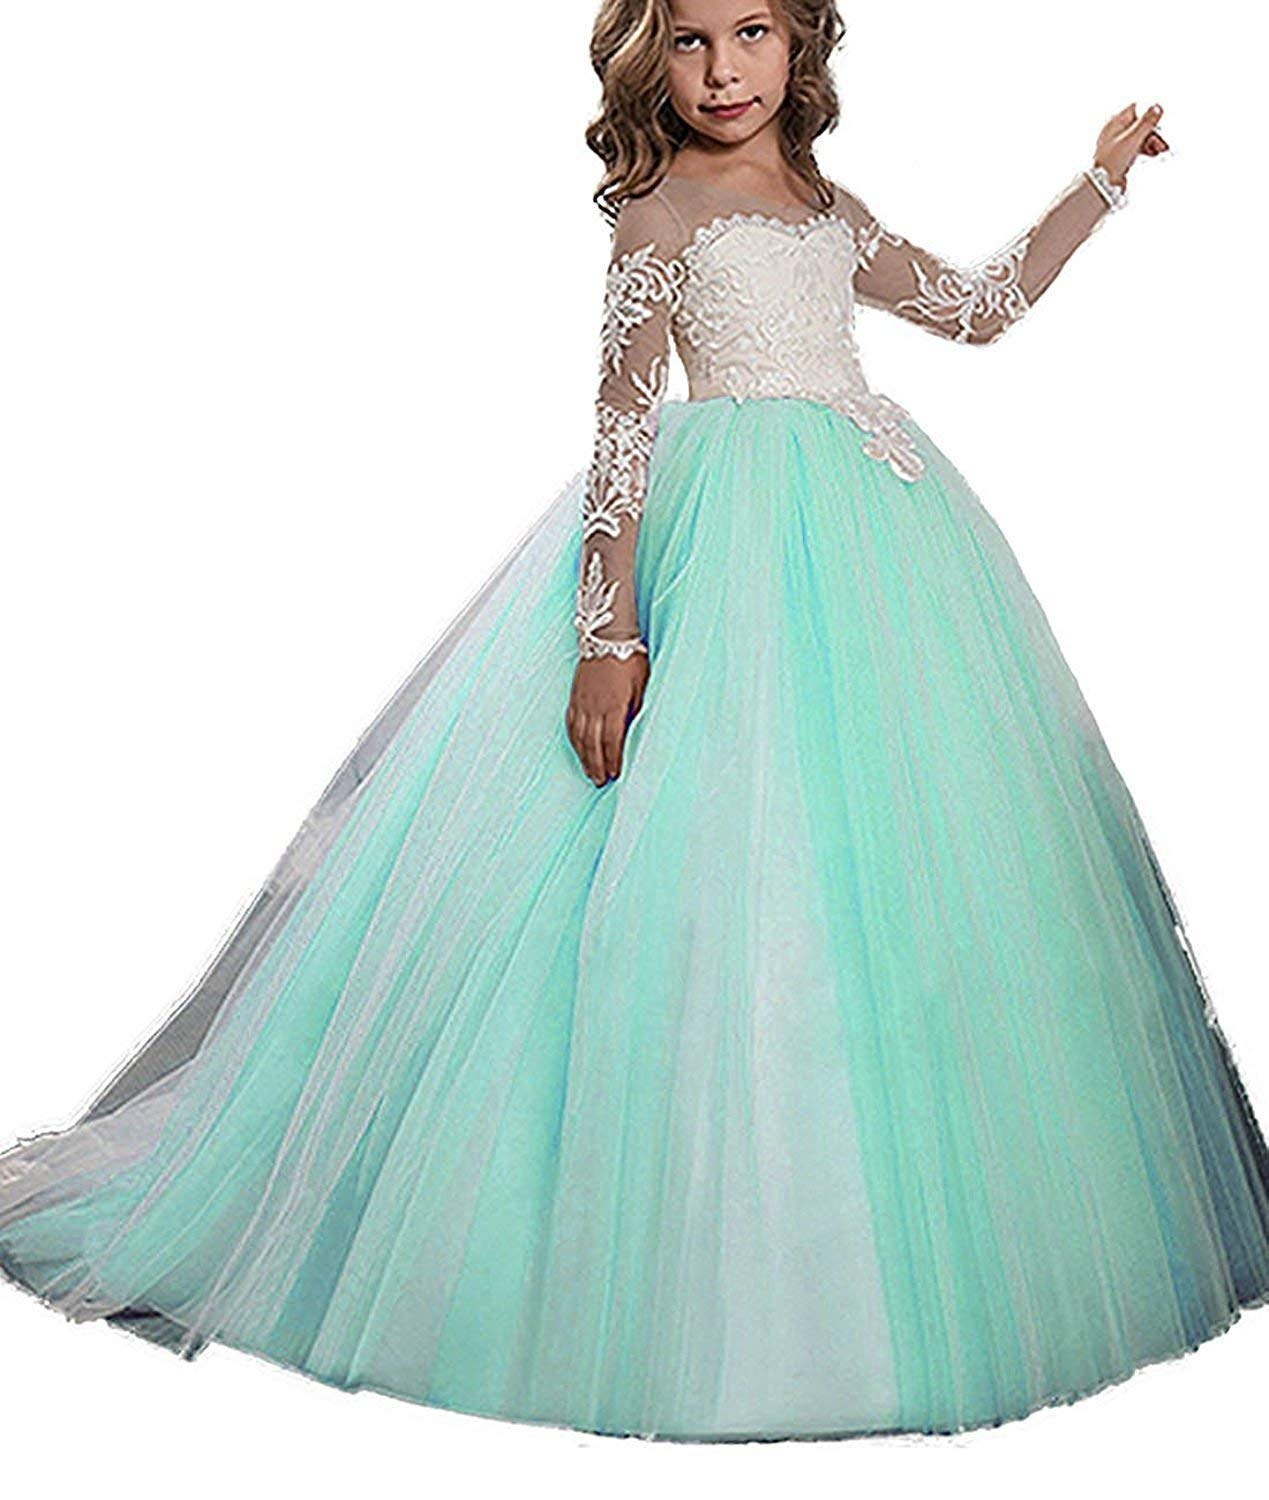 2aae8d835ce6 Flower Girl Dress Long Sleeve Princess Lace Applique Ball Gown Kid Tulle  Dress